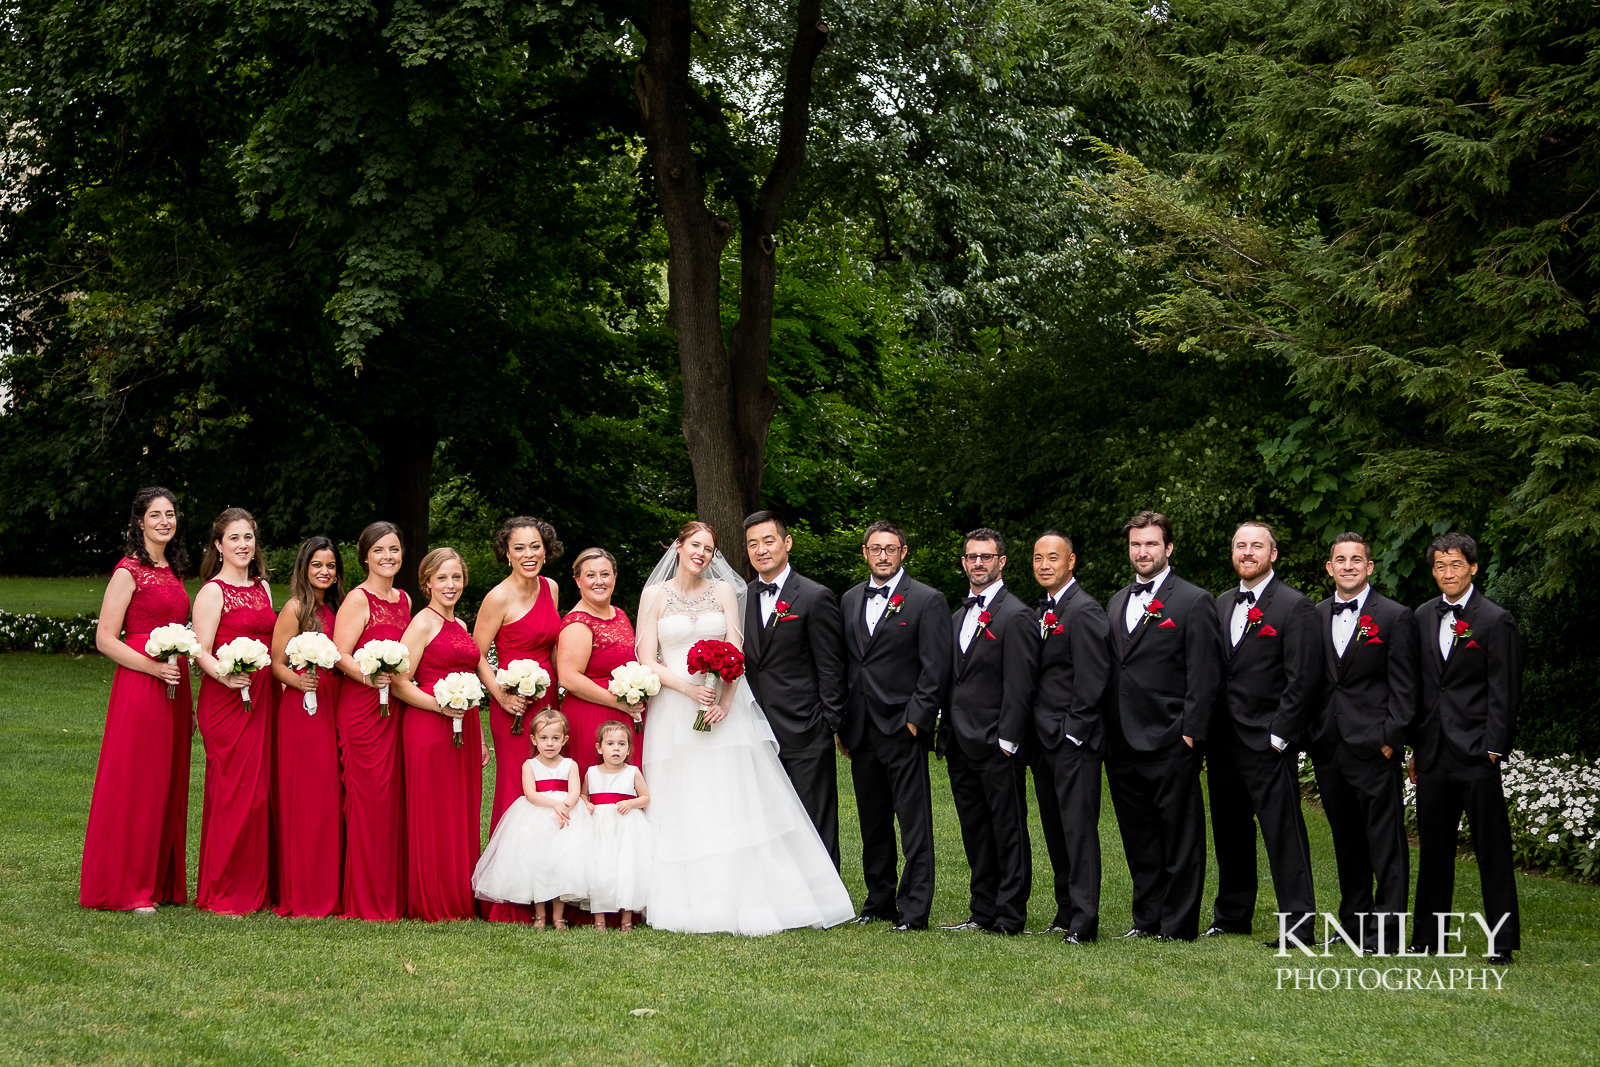 088 - Rochester NY wedding pictures - Genesee Valley Club - Ceremony and Reception - XT2A5747.jpg